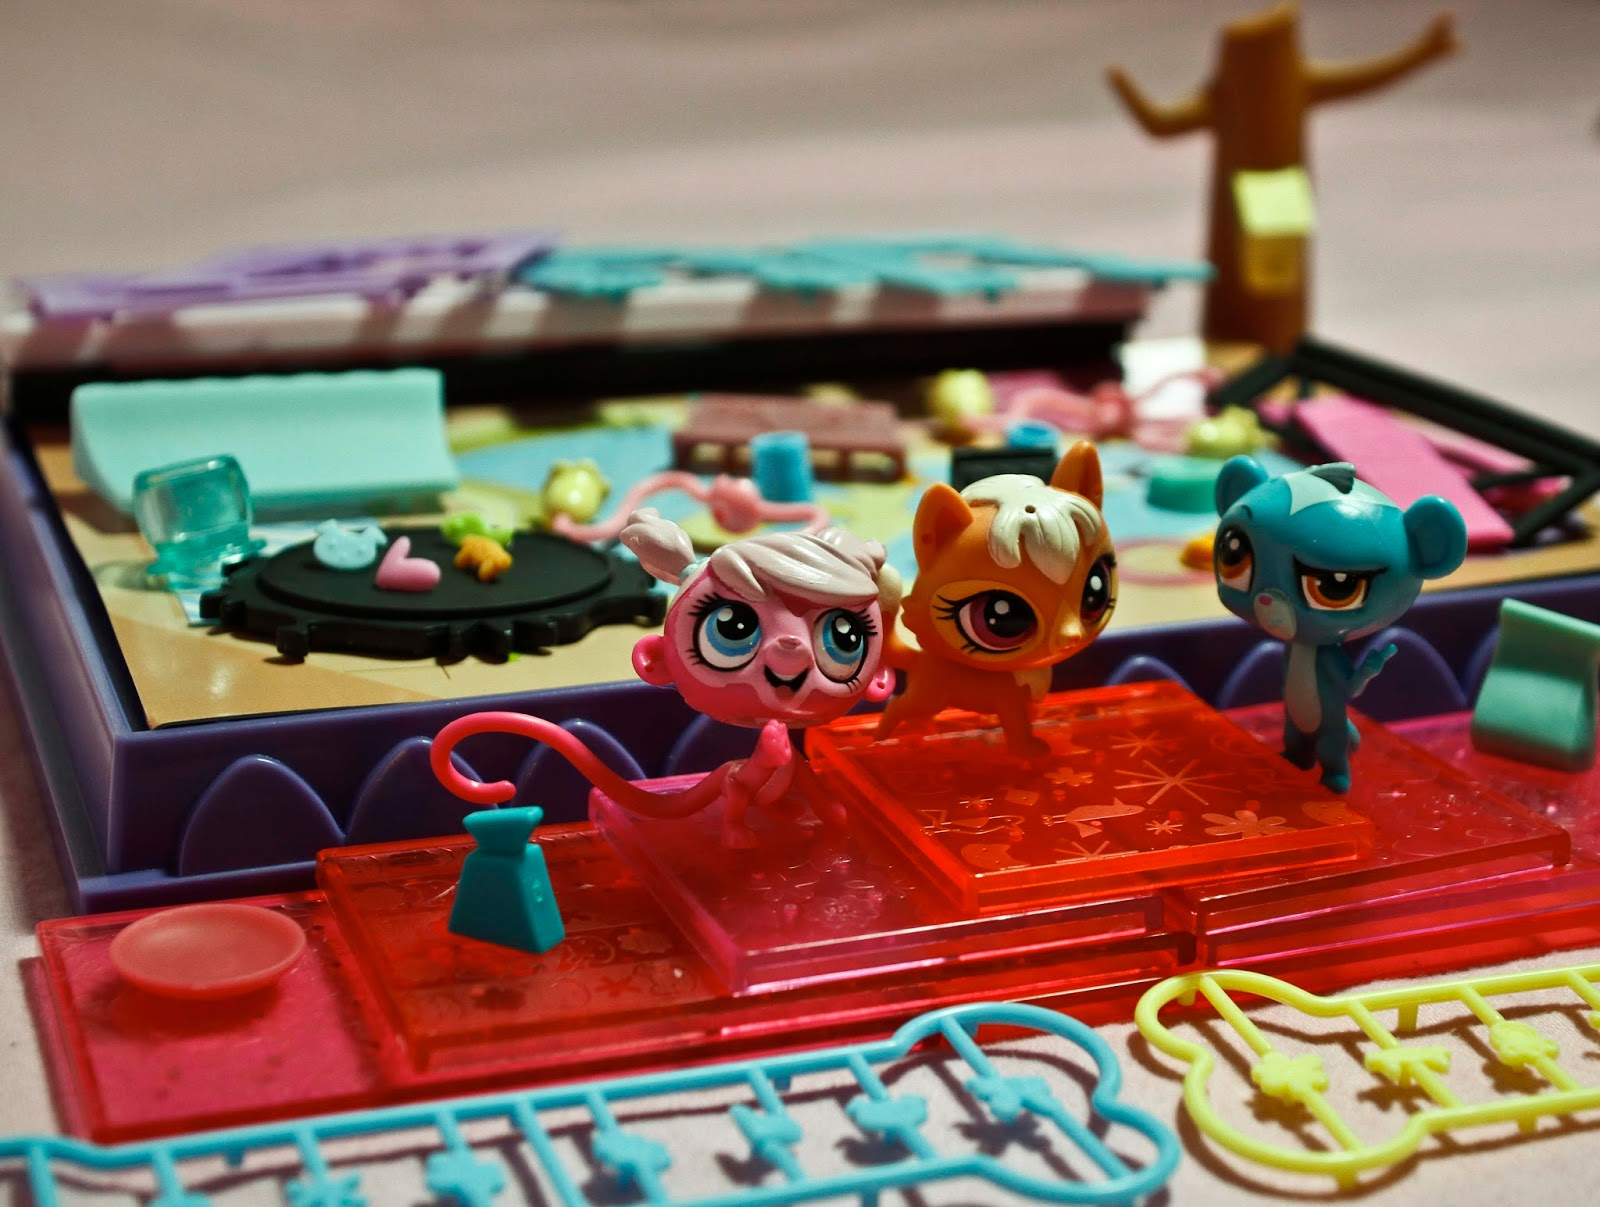 some of the contents and accessories in the littlest pet shop style set